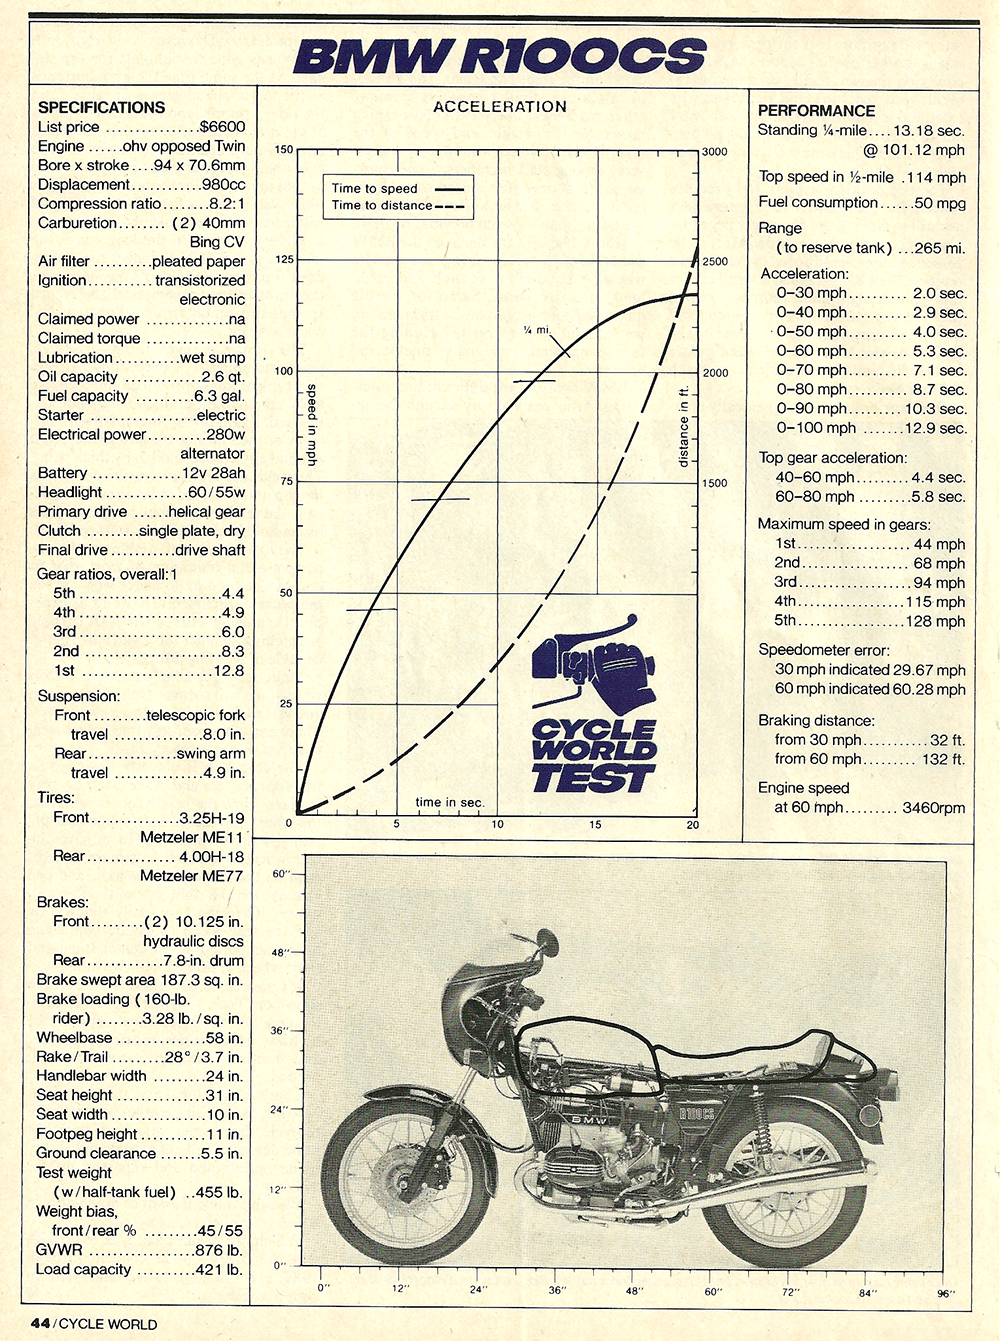 1981 BMW R100CS road test 7.jpg